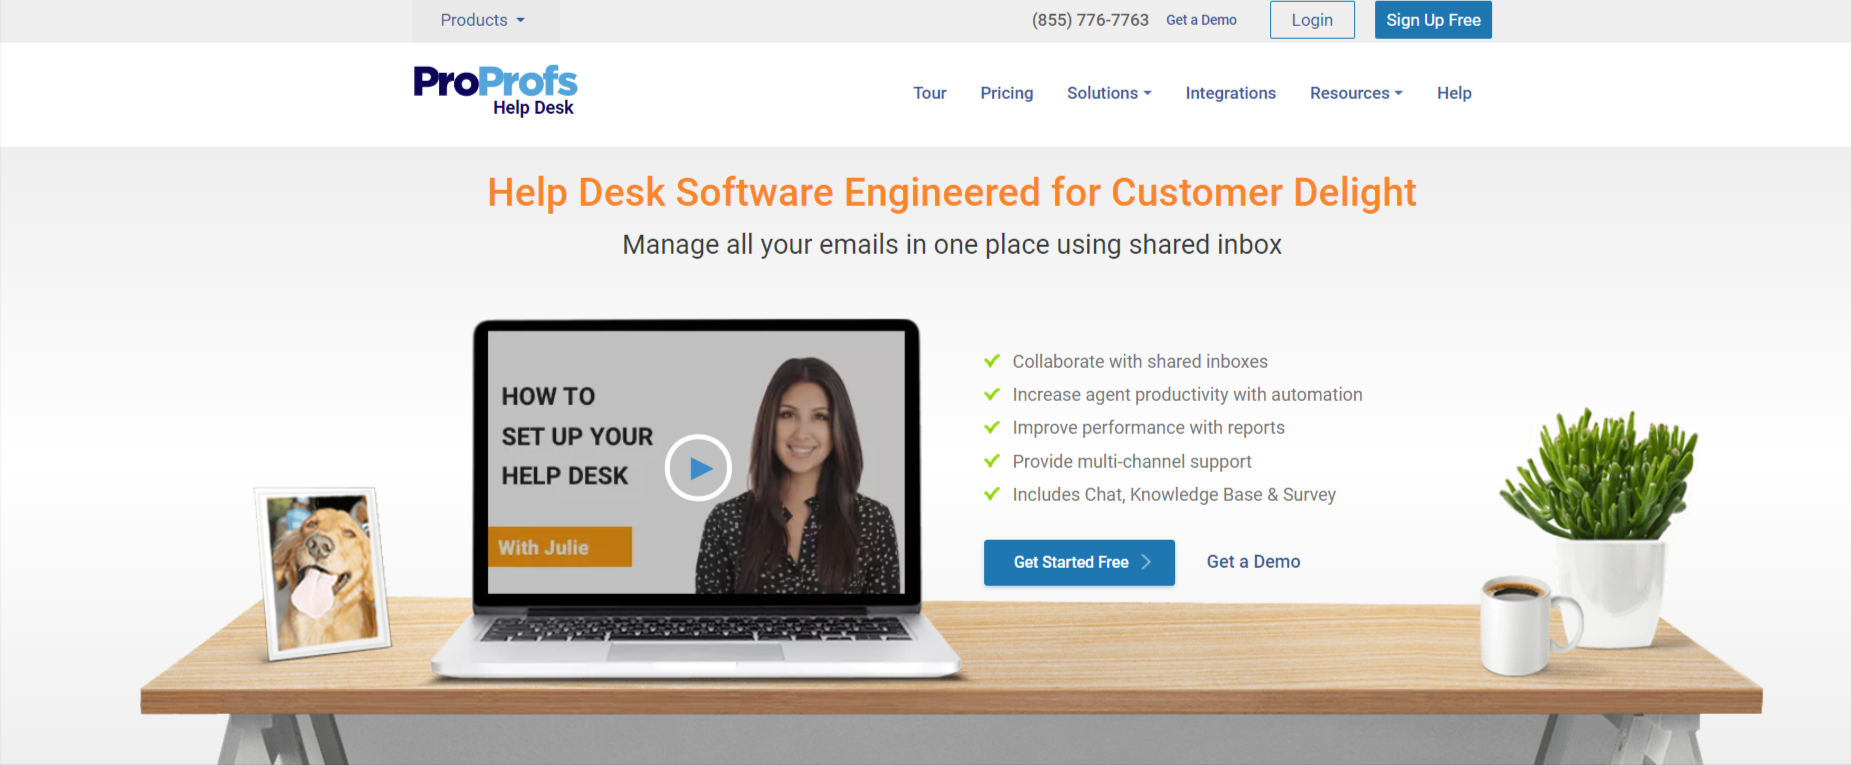 Help Desk Software by proprofs